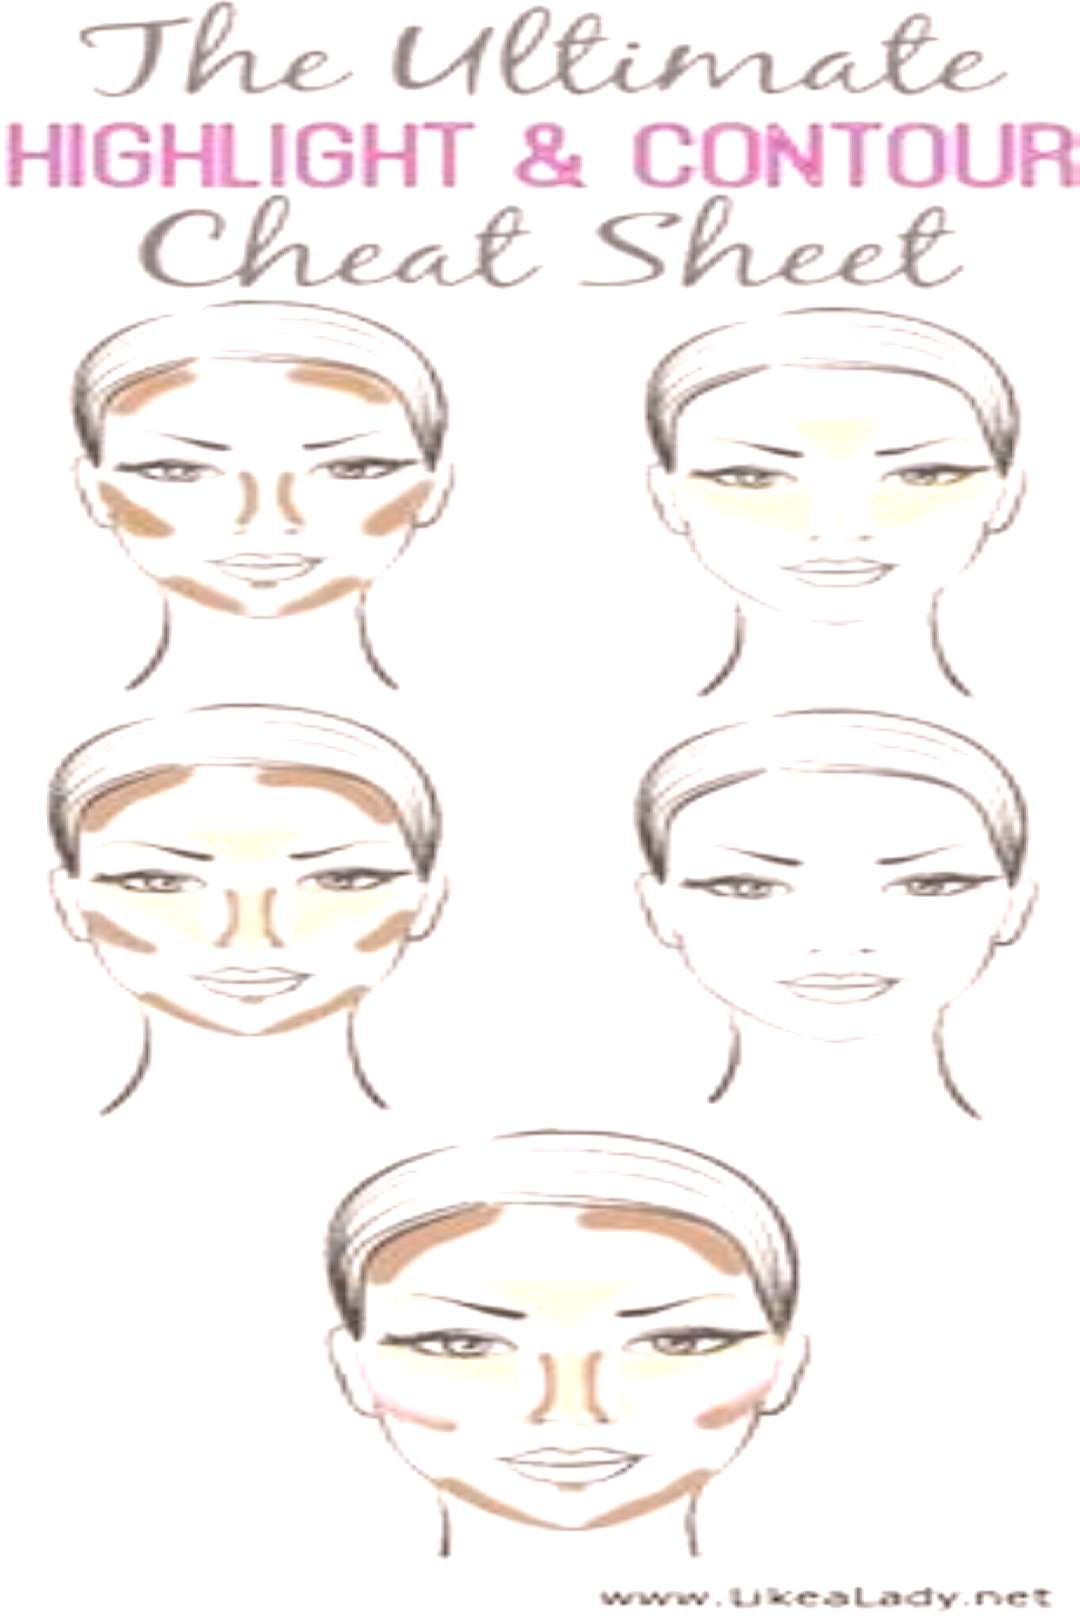 A guide that every lady can use - contouring! Take your makeup to the next level with this tutorial